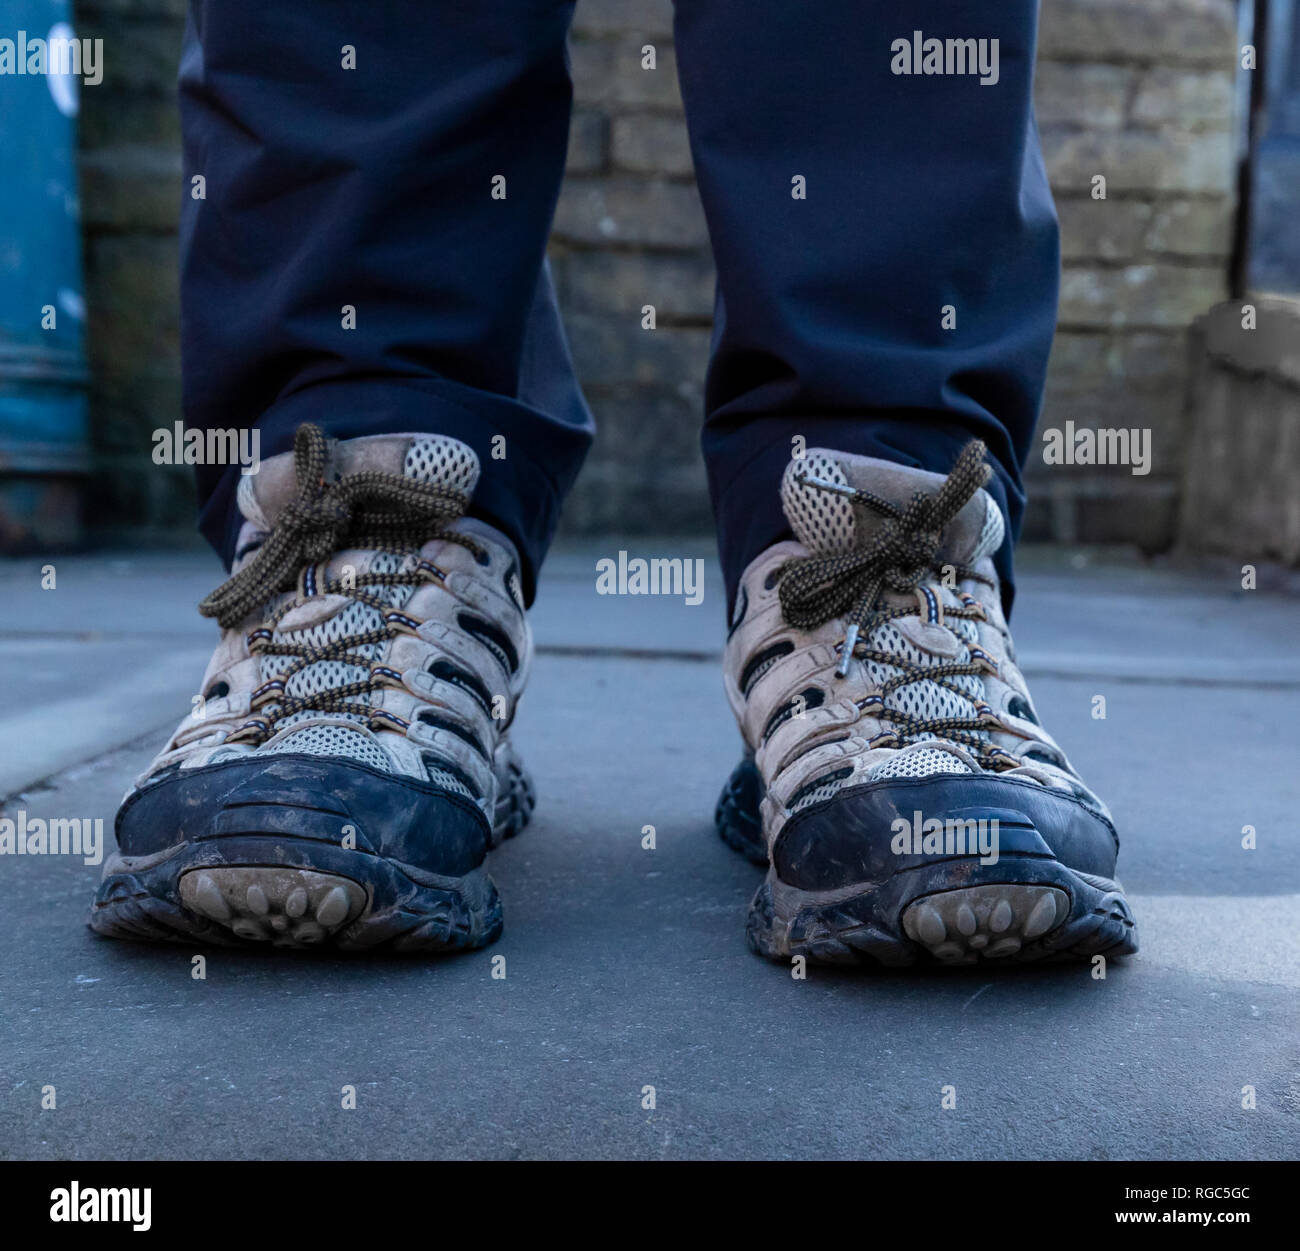 A pair of adult male feet wearing trainers. Stock Photo